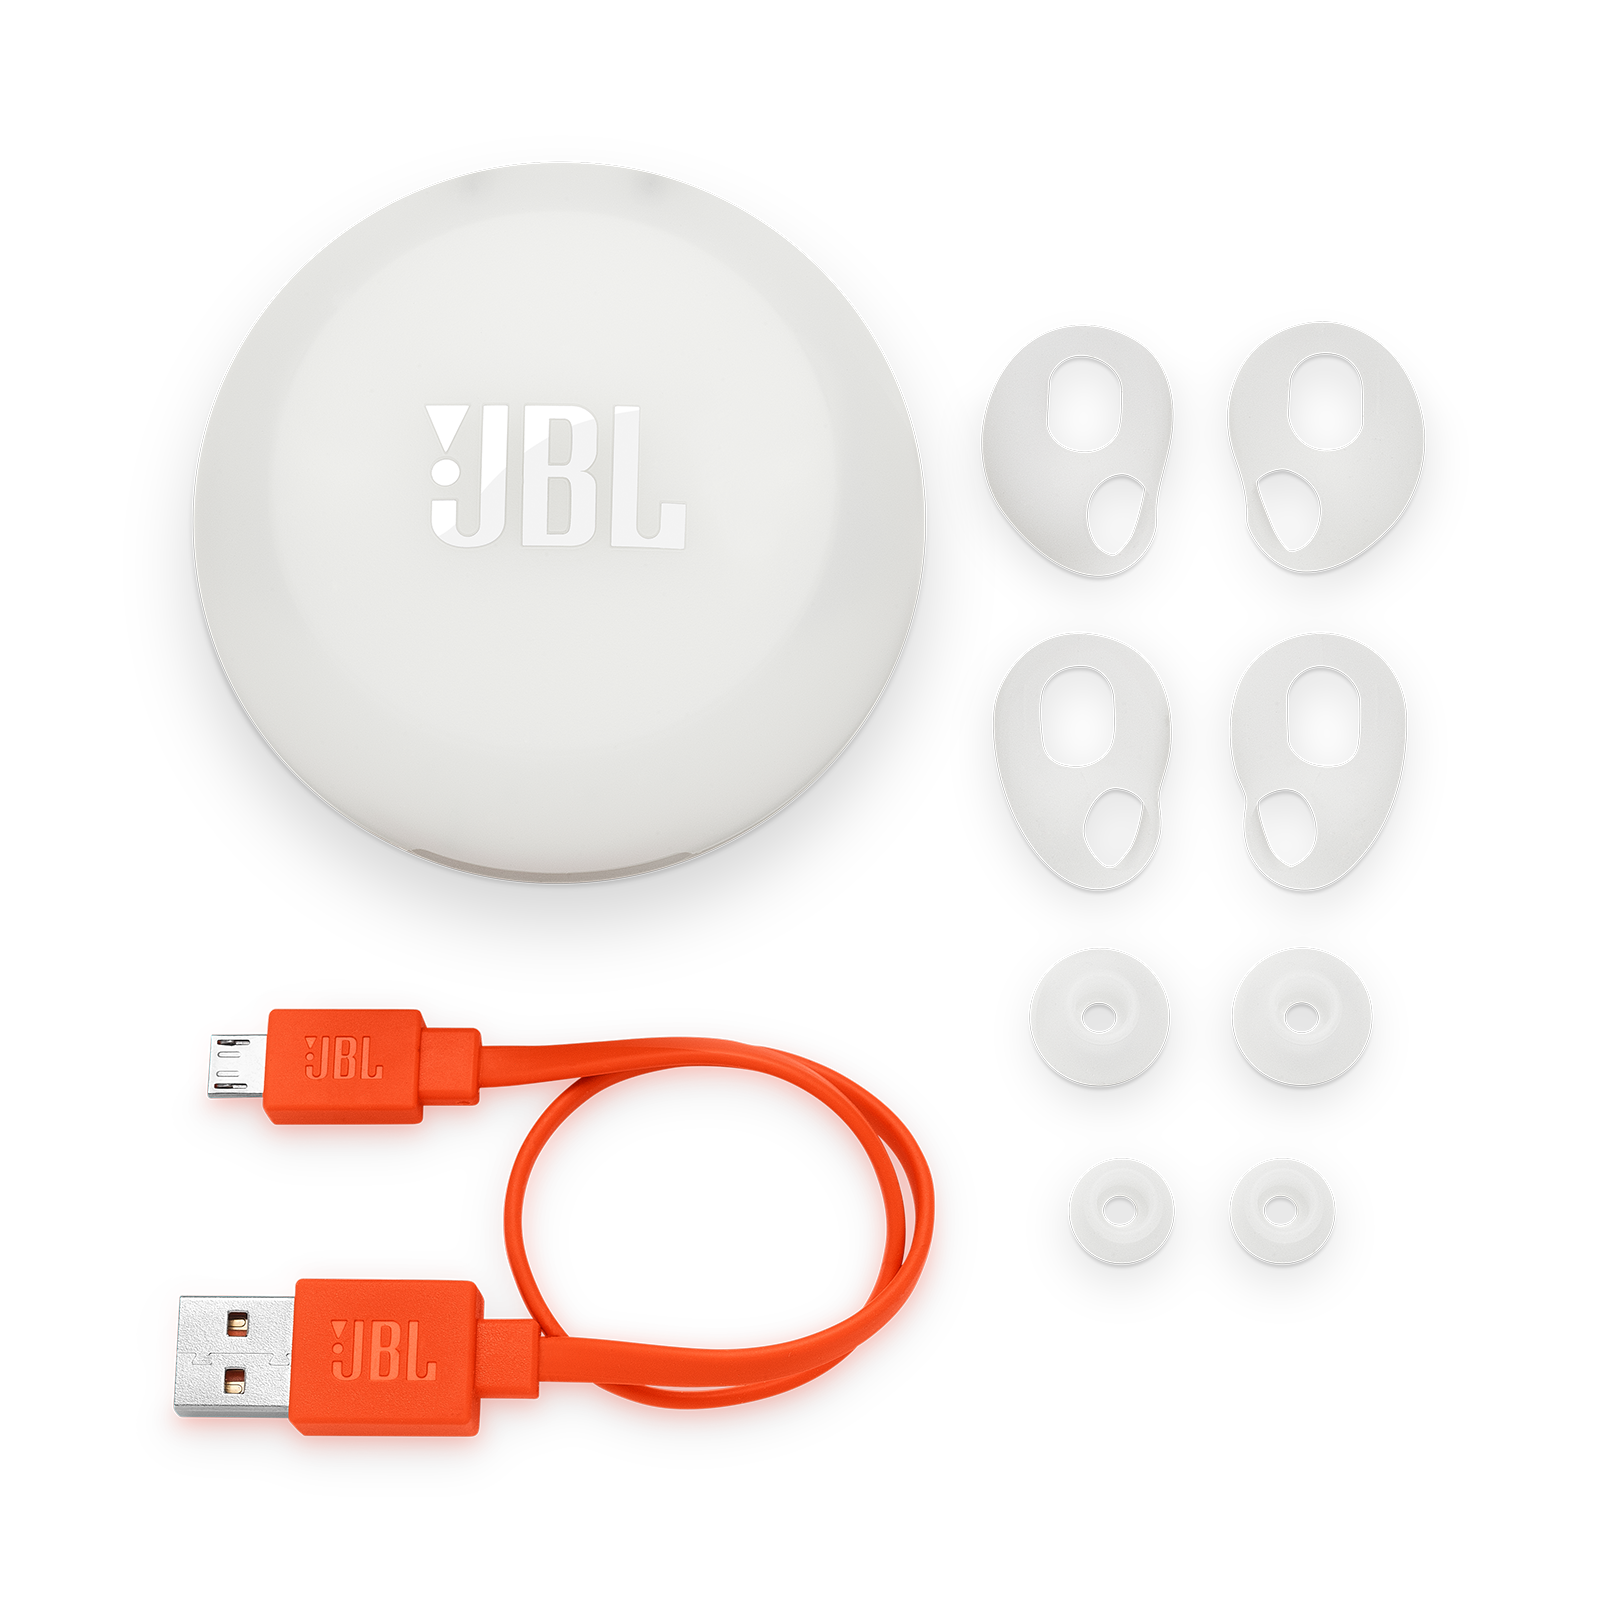 JBL Free X ear buds replacement Kit - White - JBL FREE replacement units - Detailshot 3